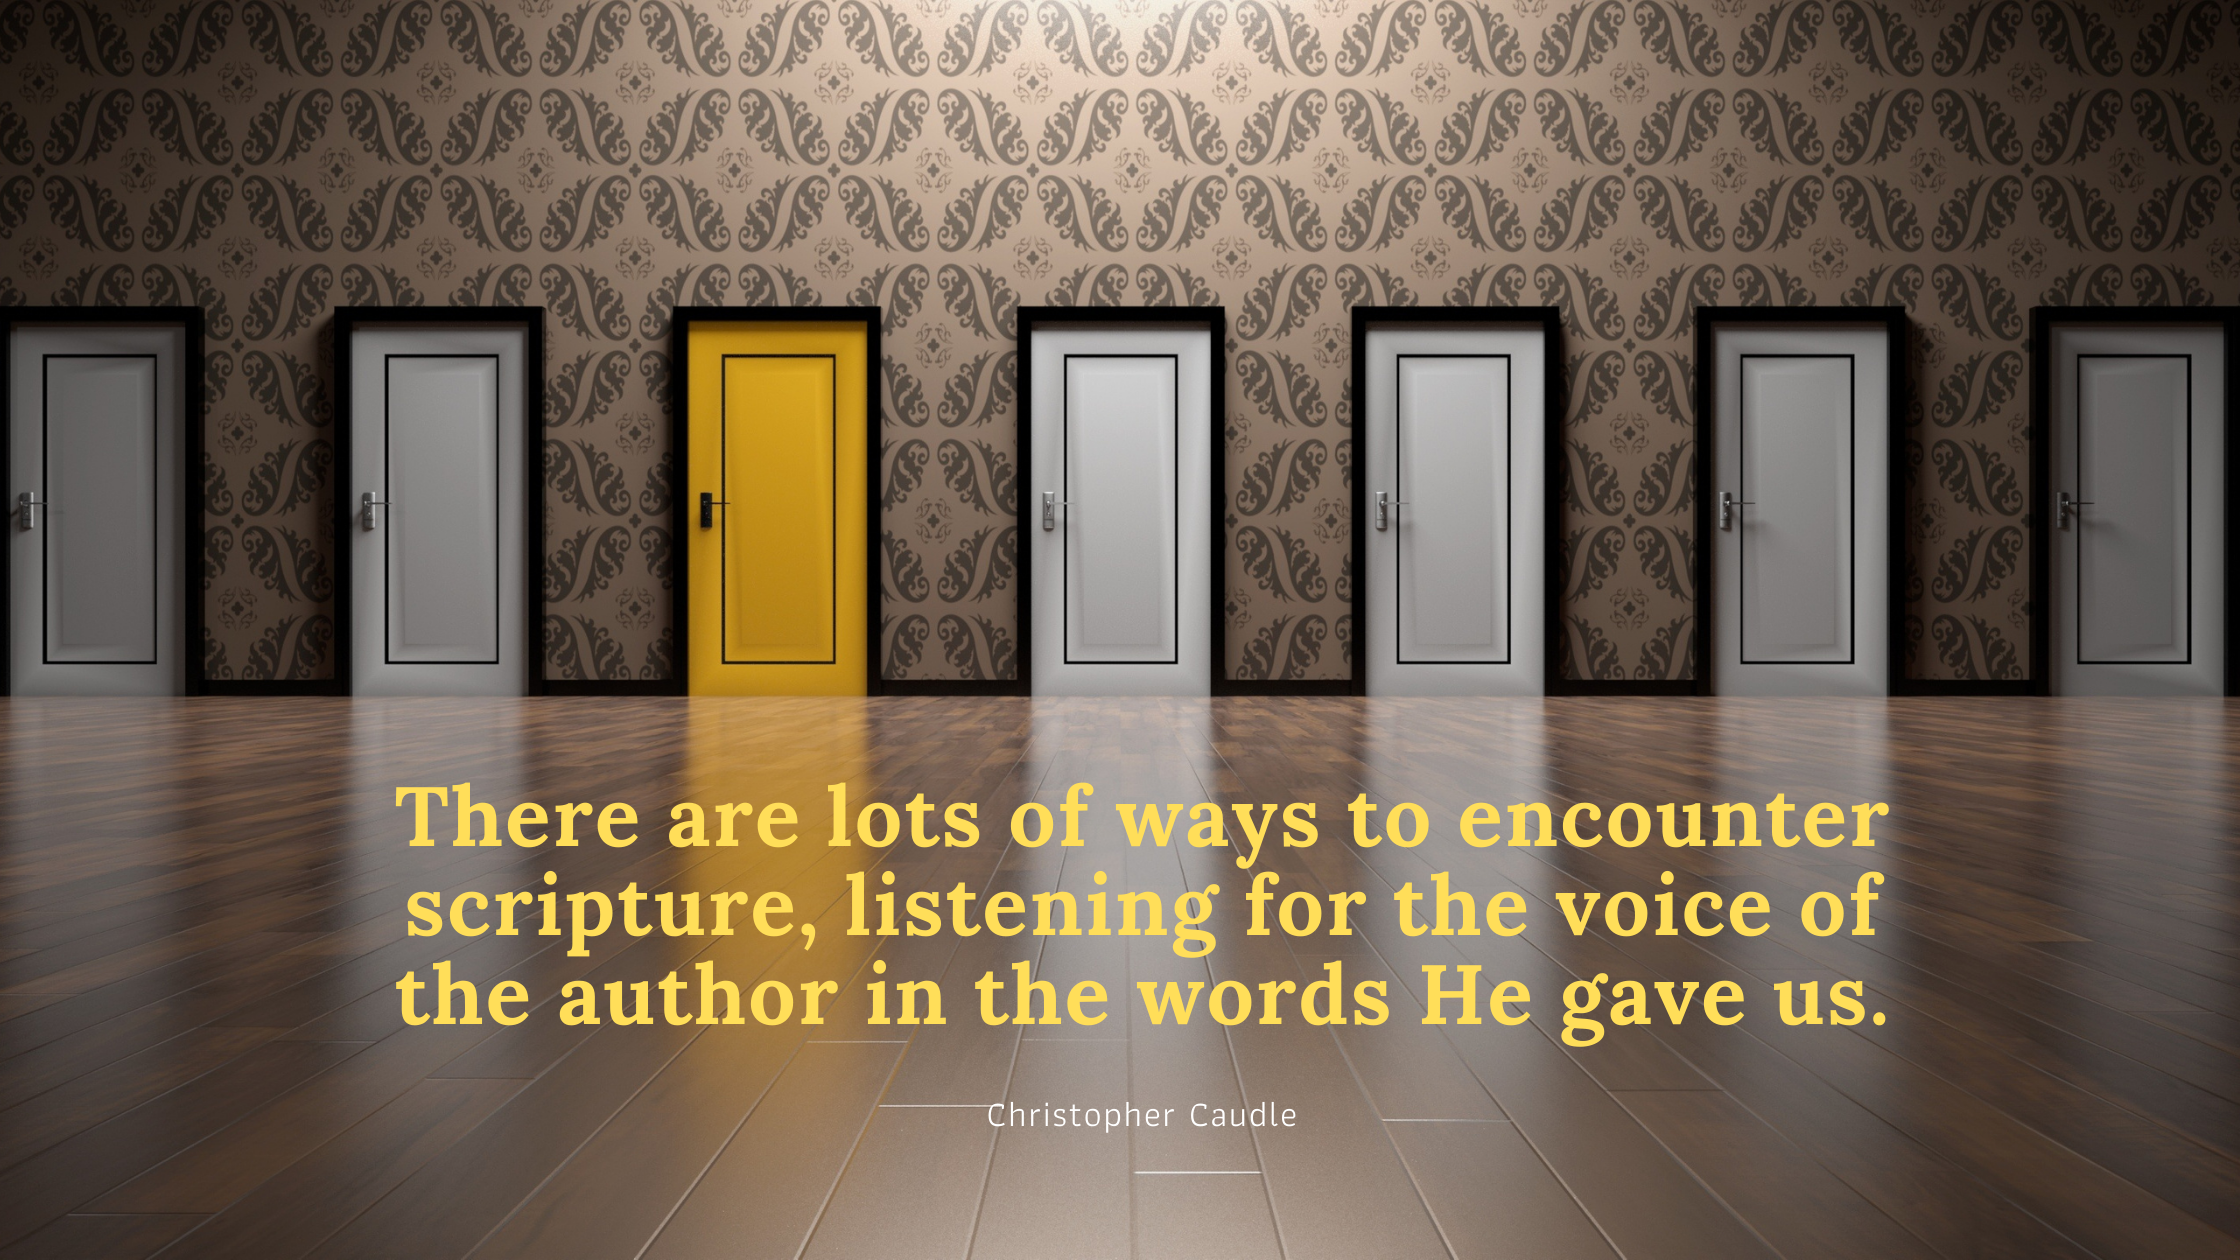 there are lots of ways to encounter scripture, listening for the voice of the author in the words He gave us.